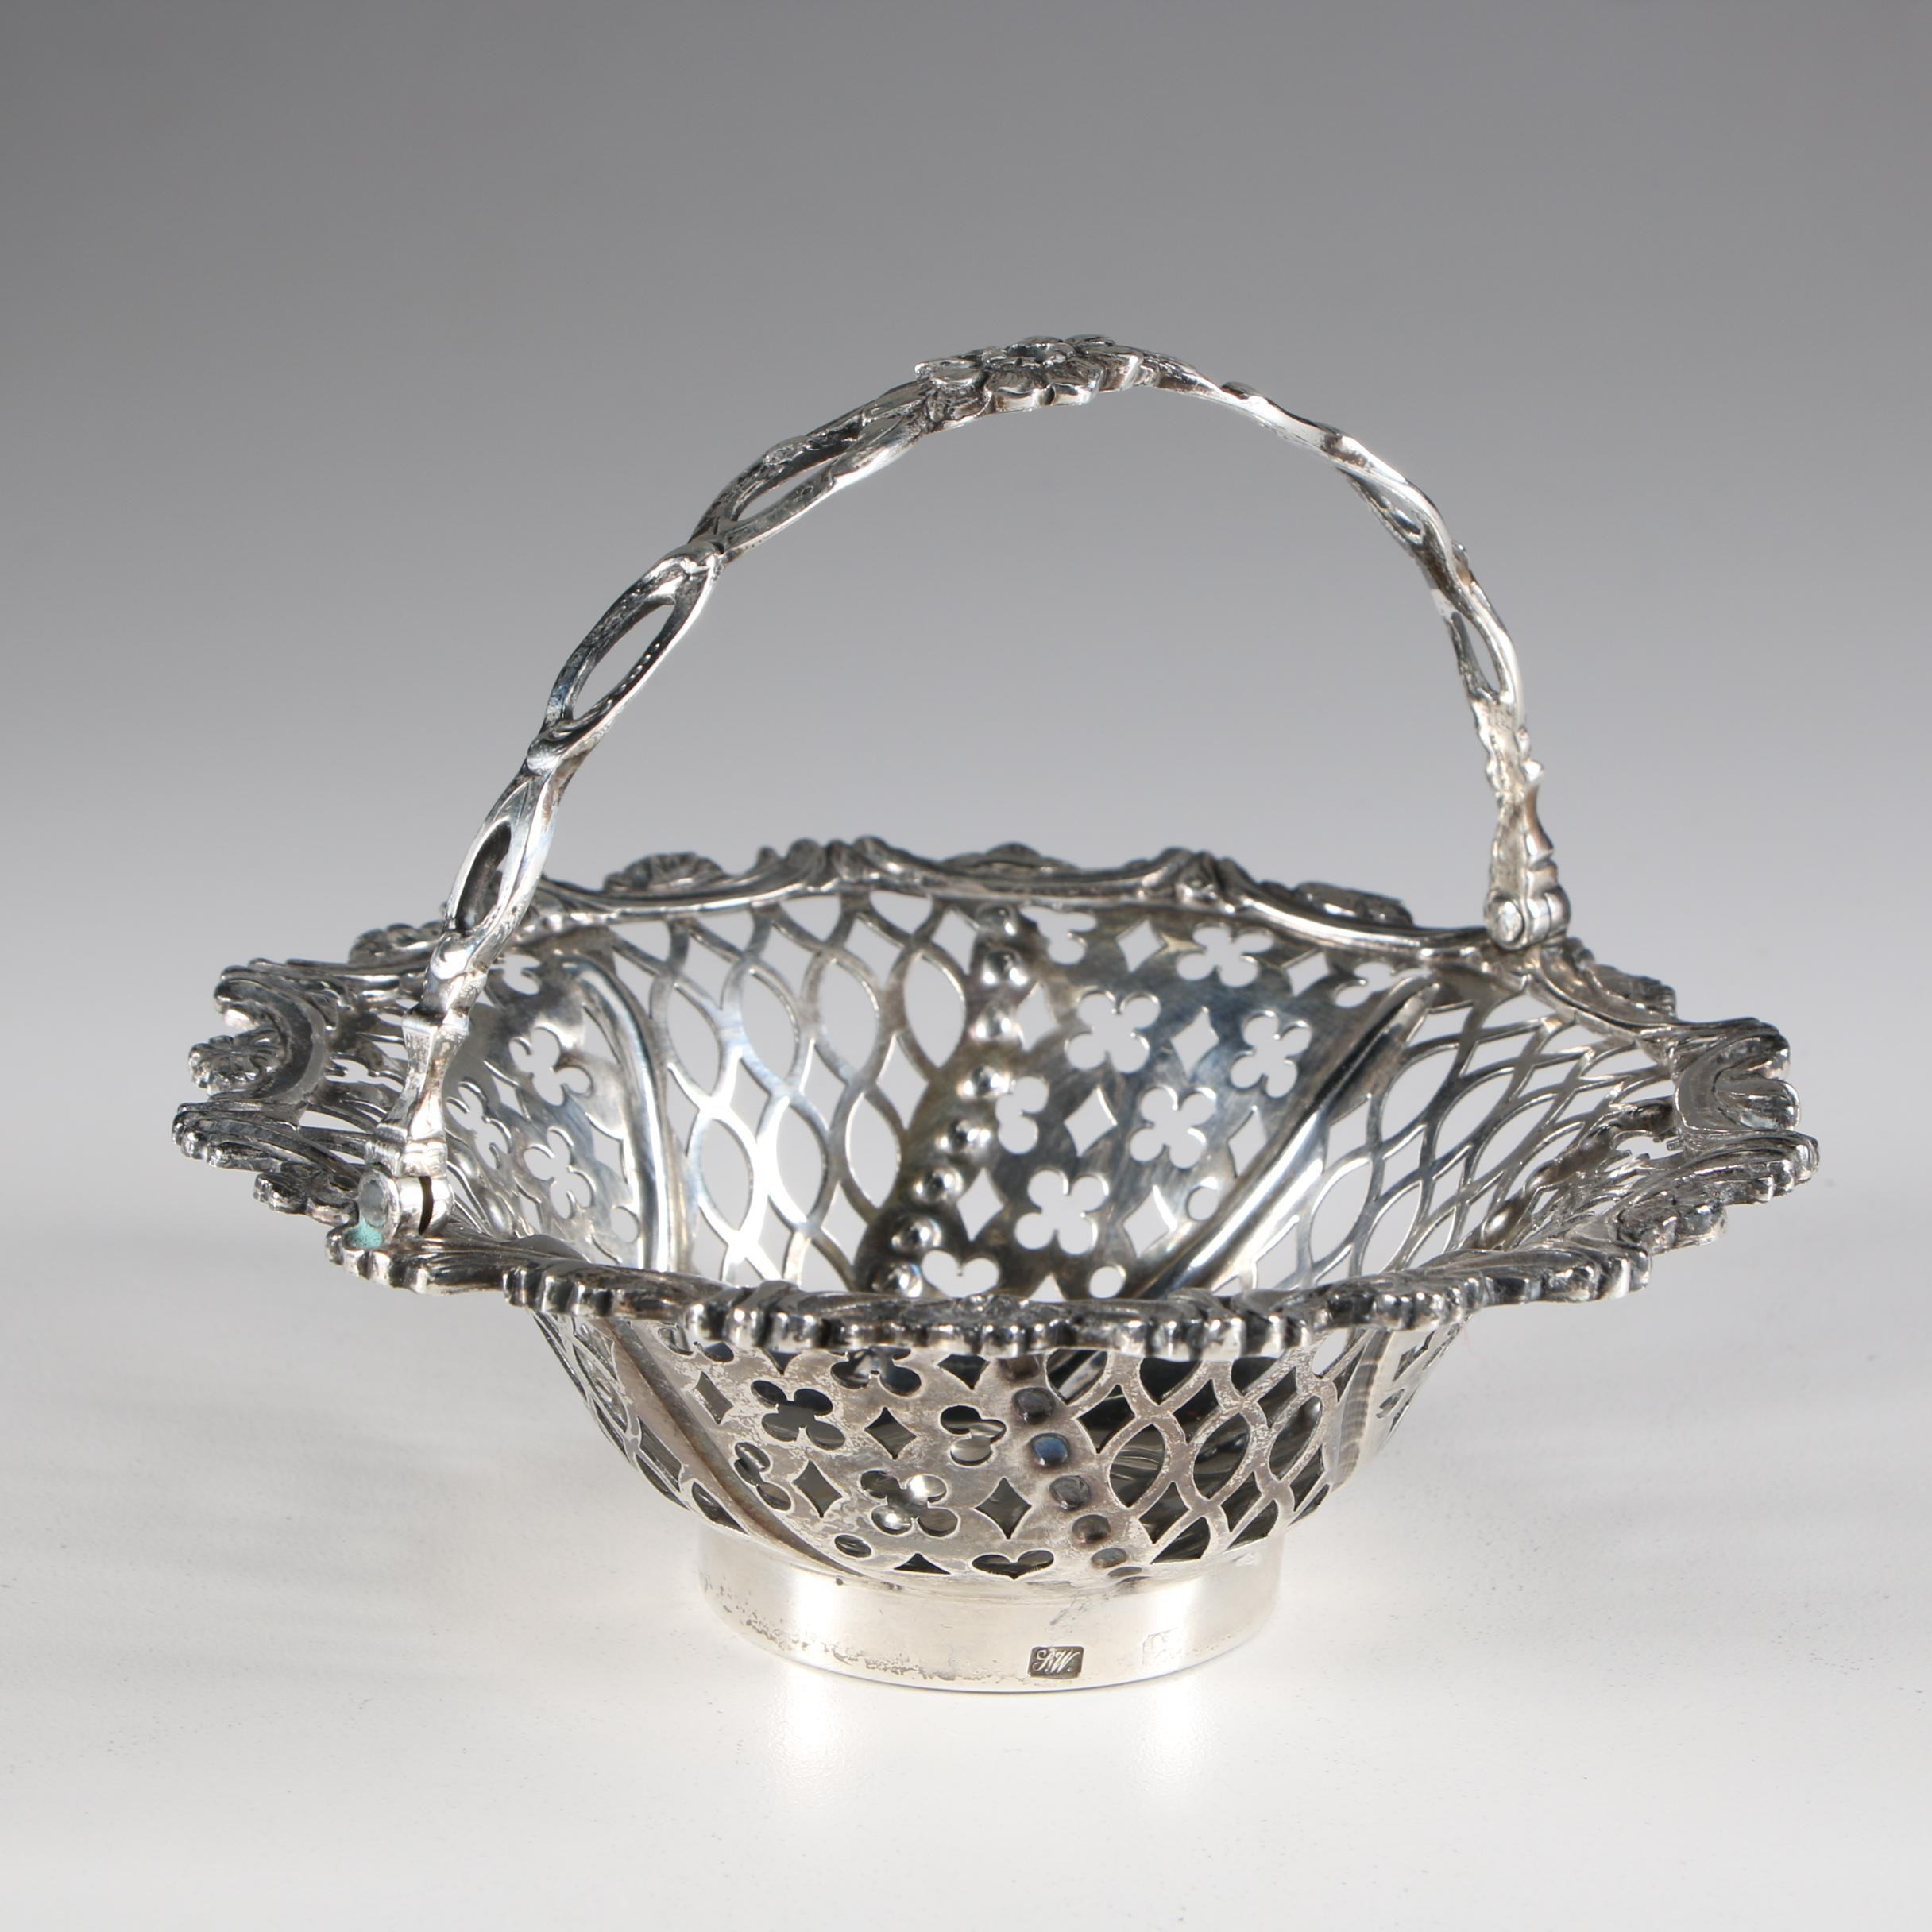 English Sterling Silver Pierced Basket, Early 19th Century